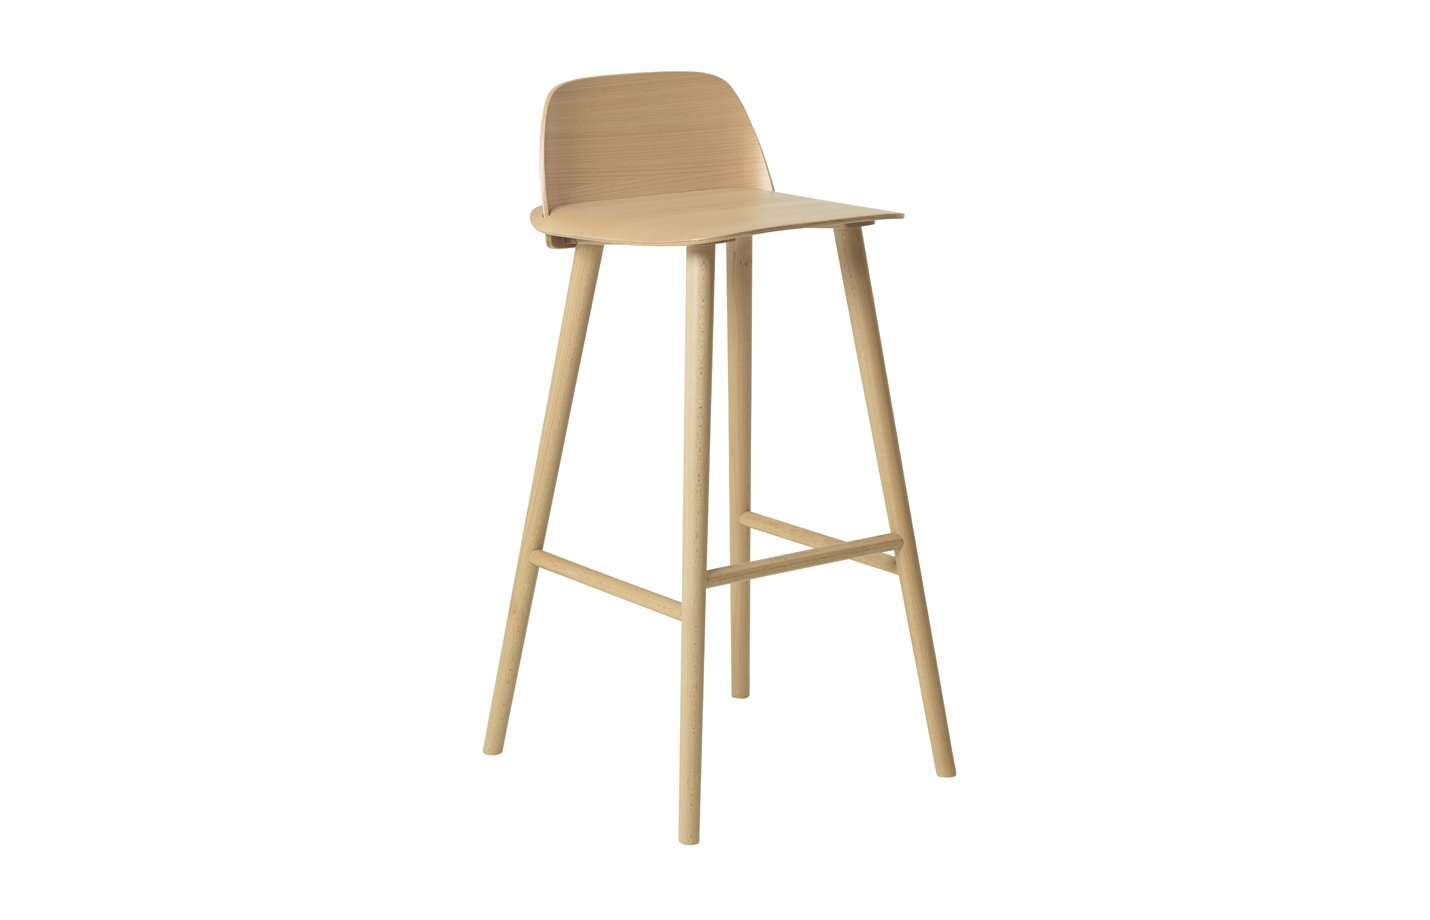 Nerd bar stool – high – Beech